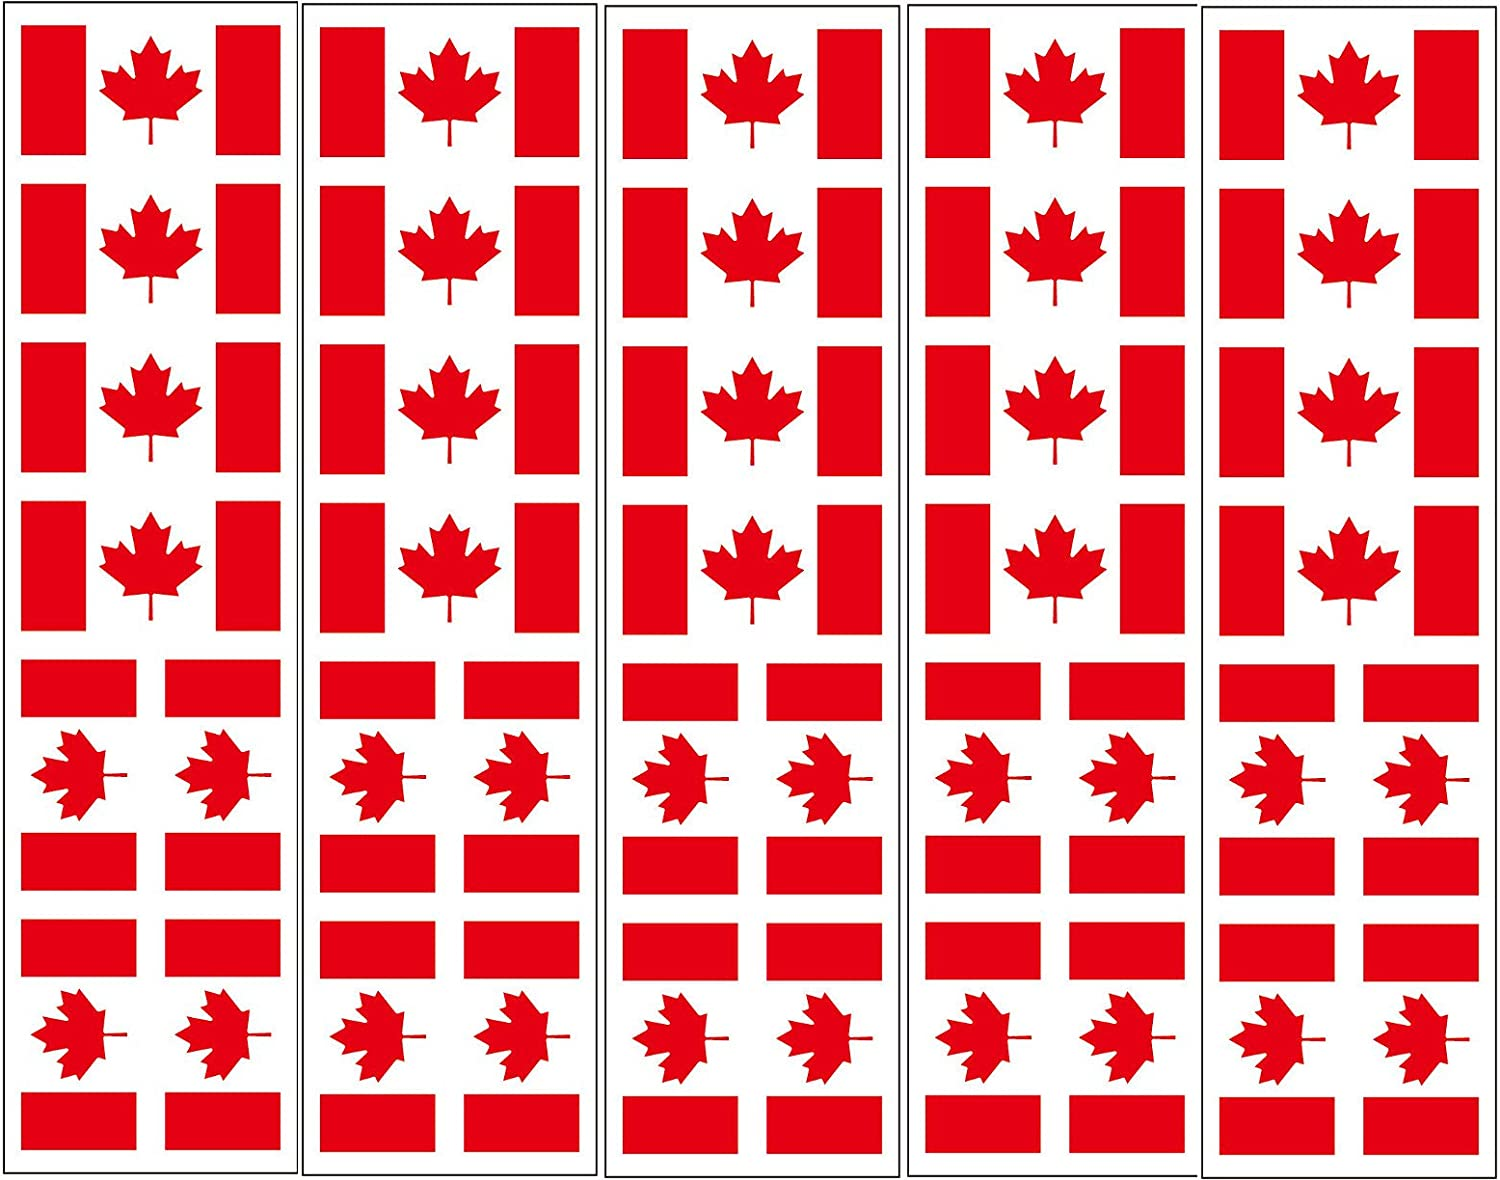 40 Tattoos: Canada Flag, Canadian Party Favors